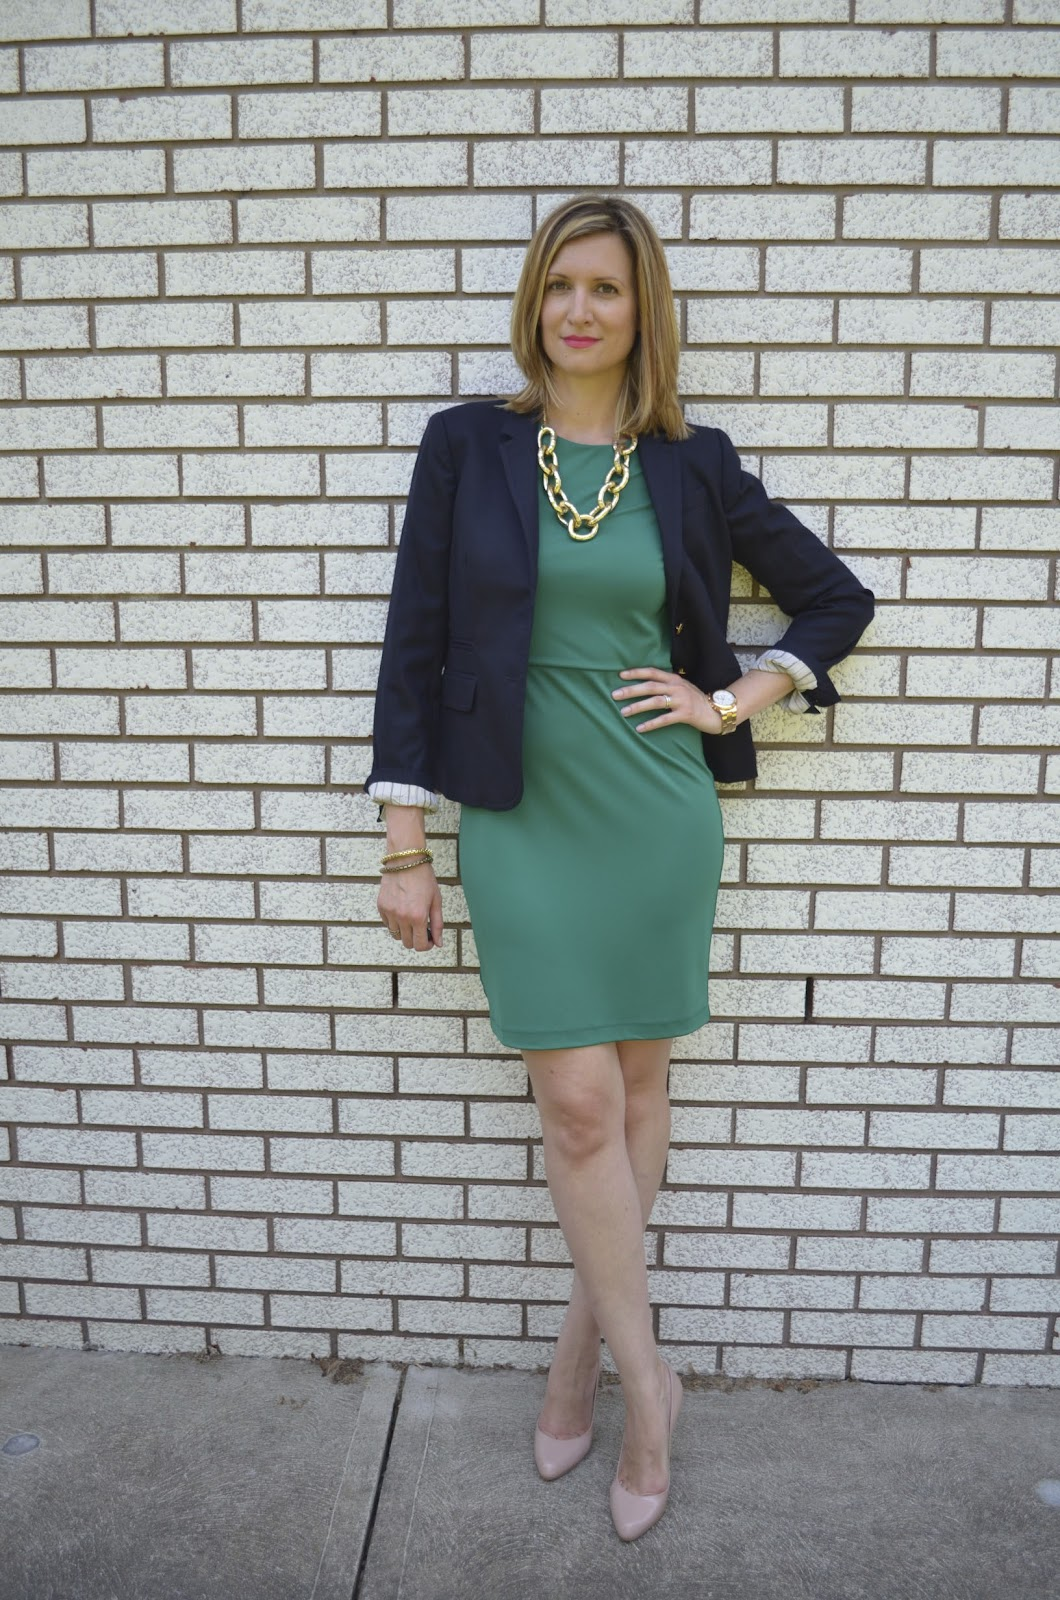 Black dress navy blazer -  Had To Pair It With Navy Blazer Makes It That Much More Office Ready Black Grey Or Even Brown Would Work As Well You All Know How Much I Love Navy